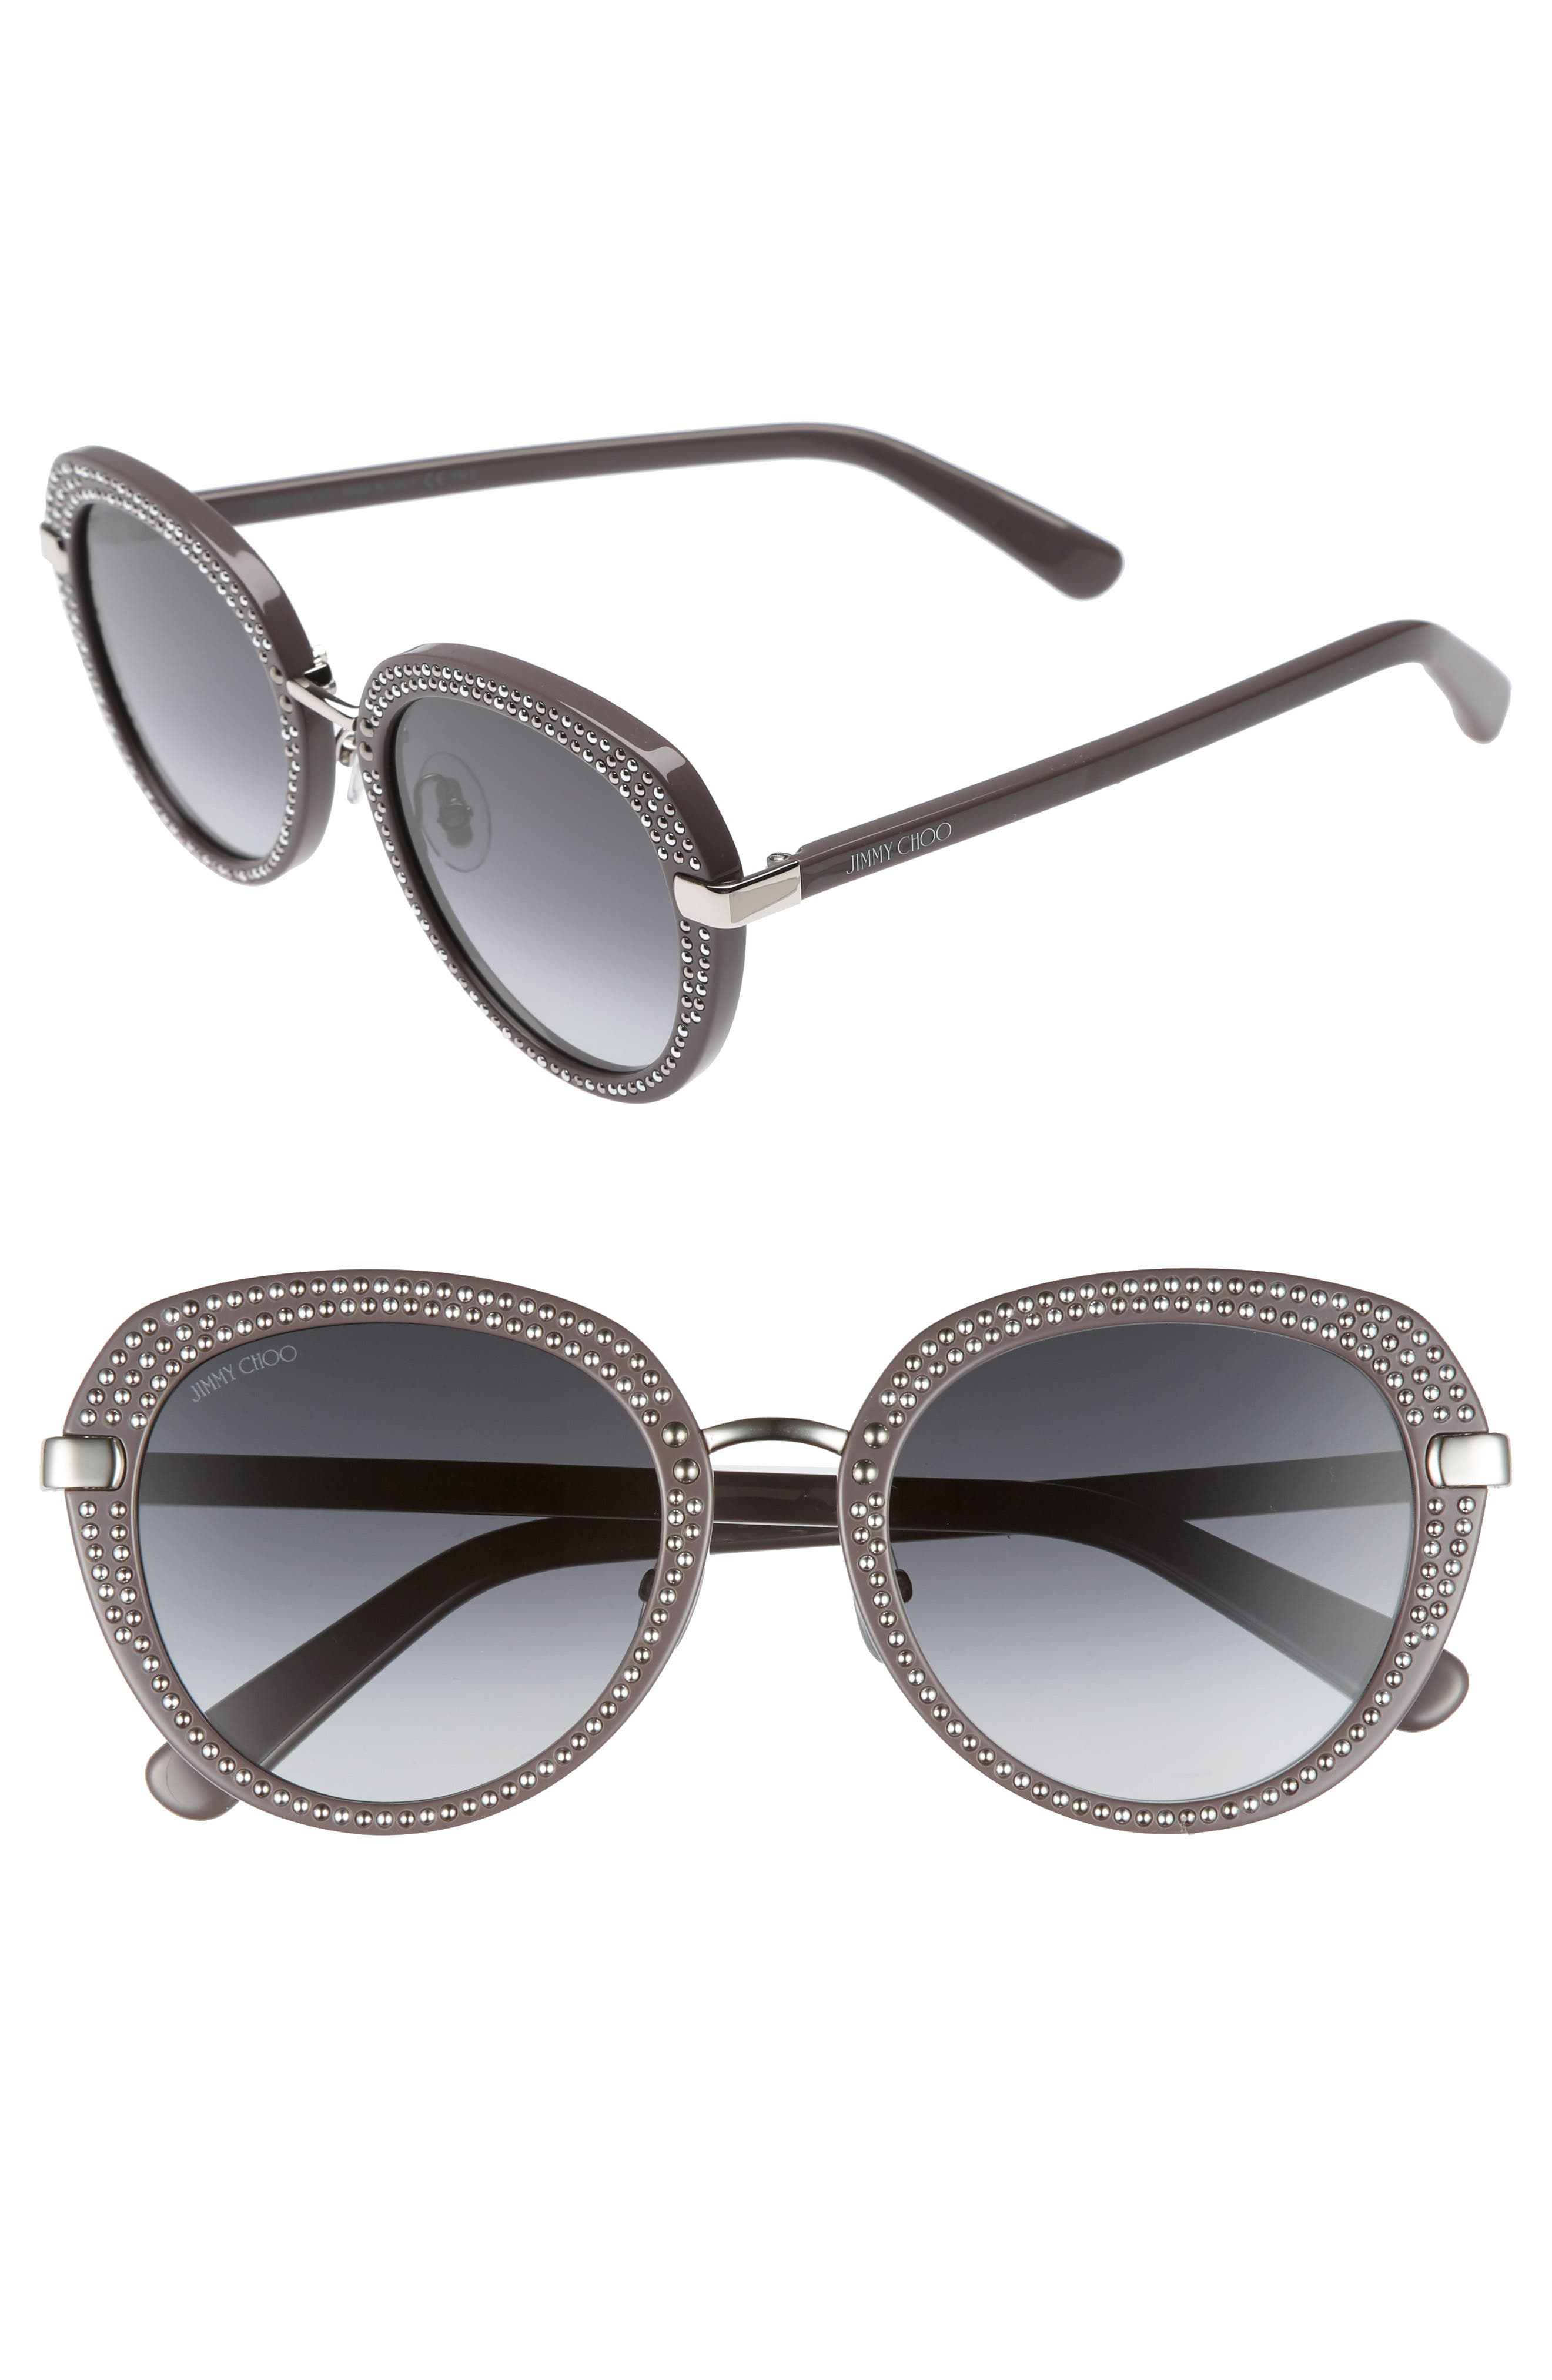 Jimmy Choo Moris 52mm Oversize Sunglasses